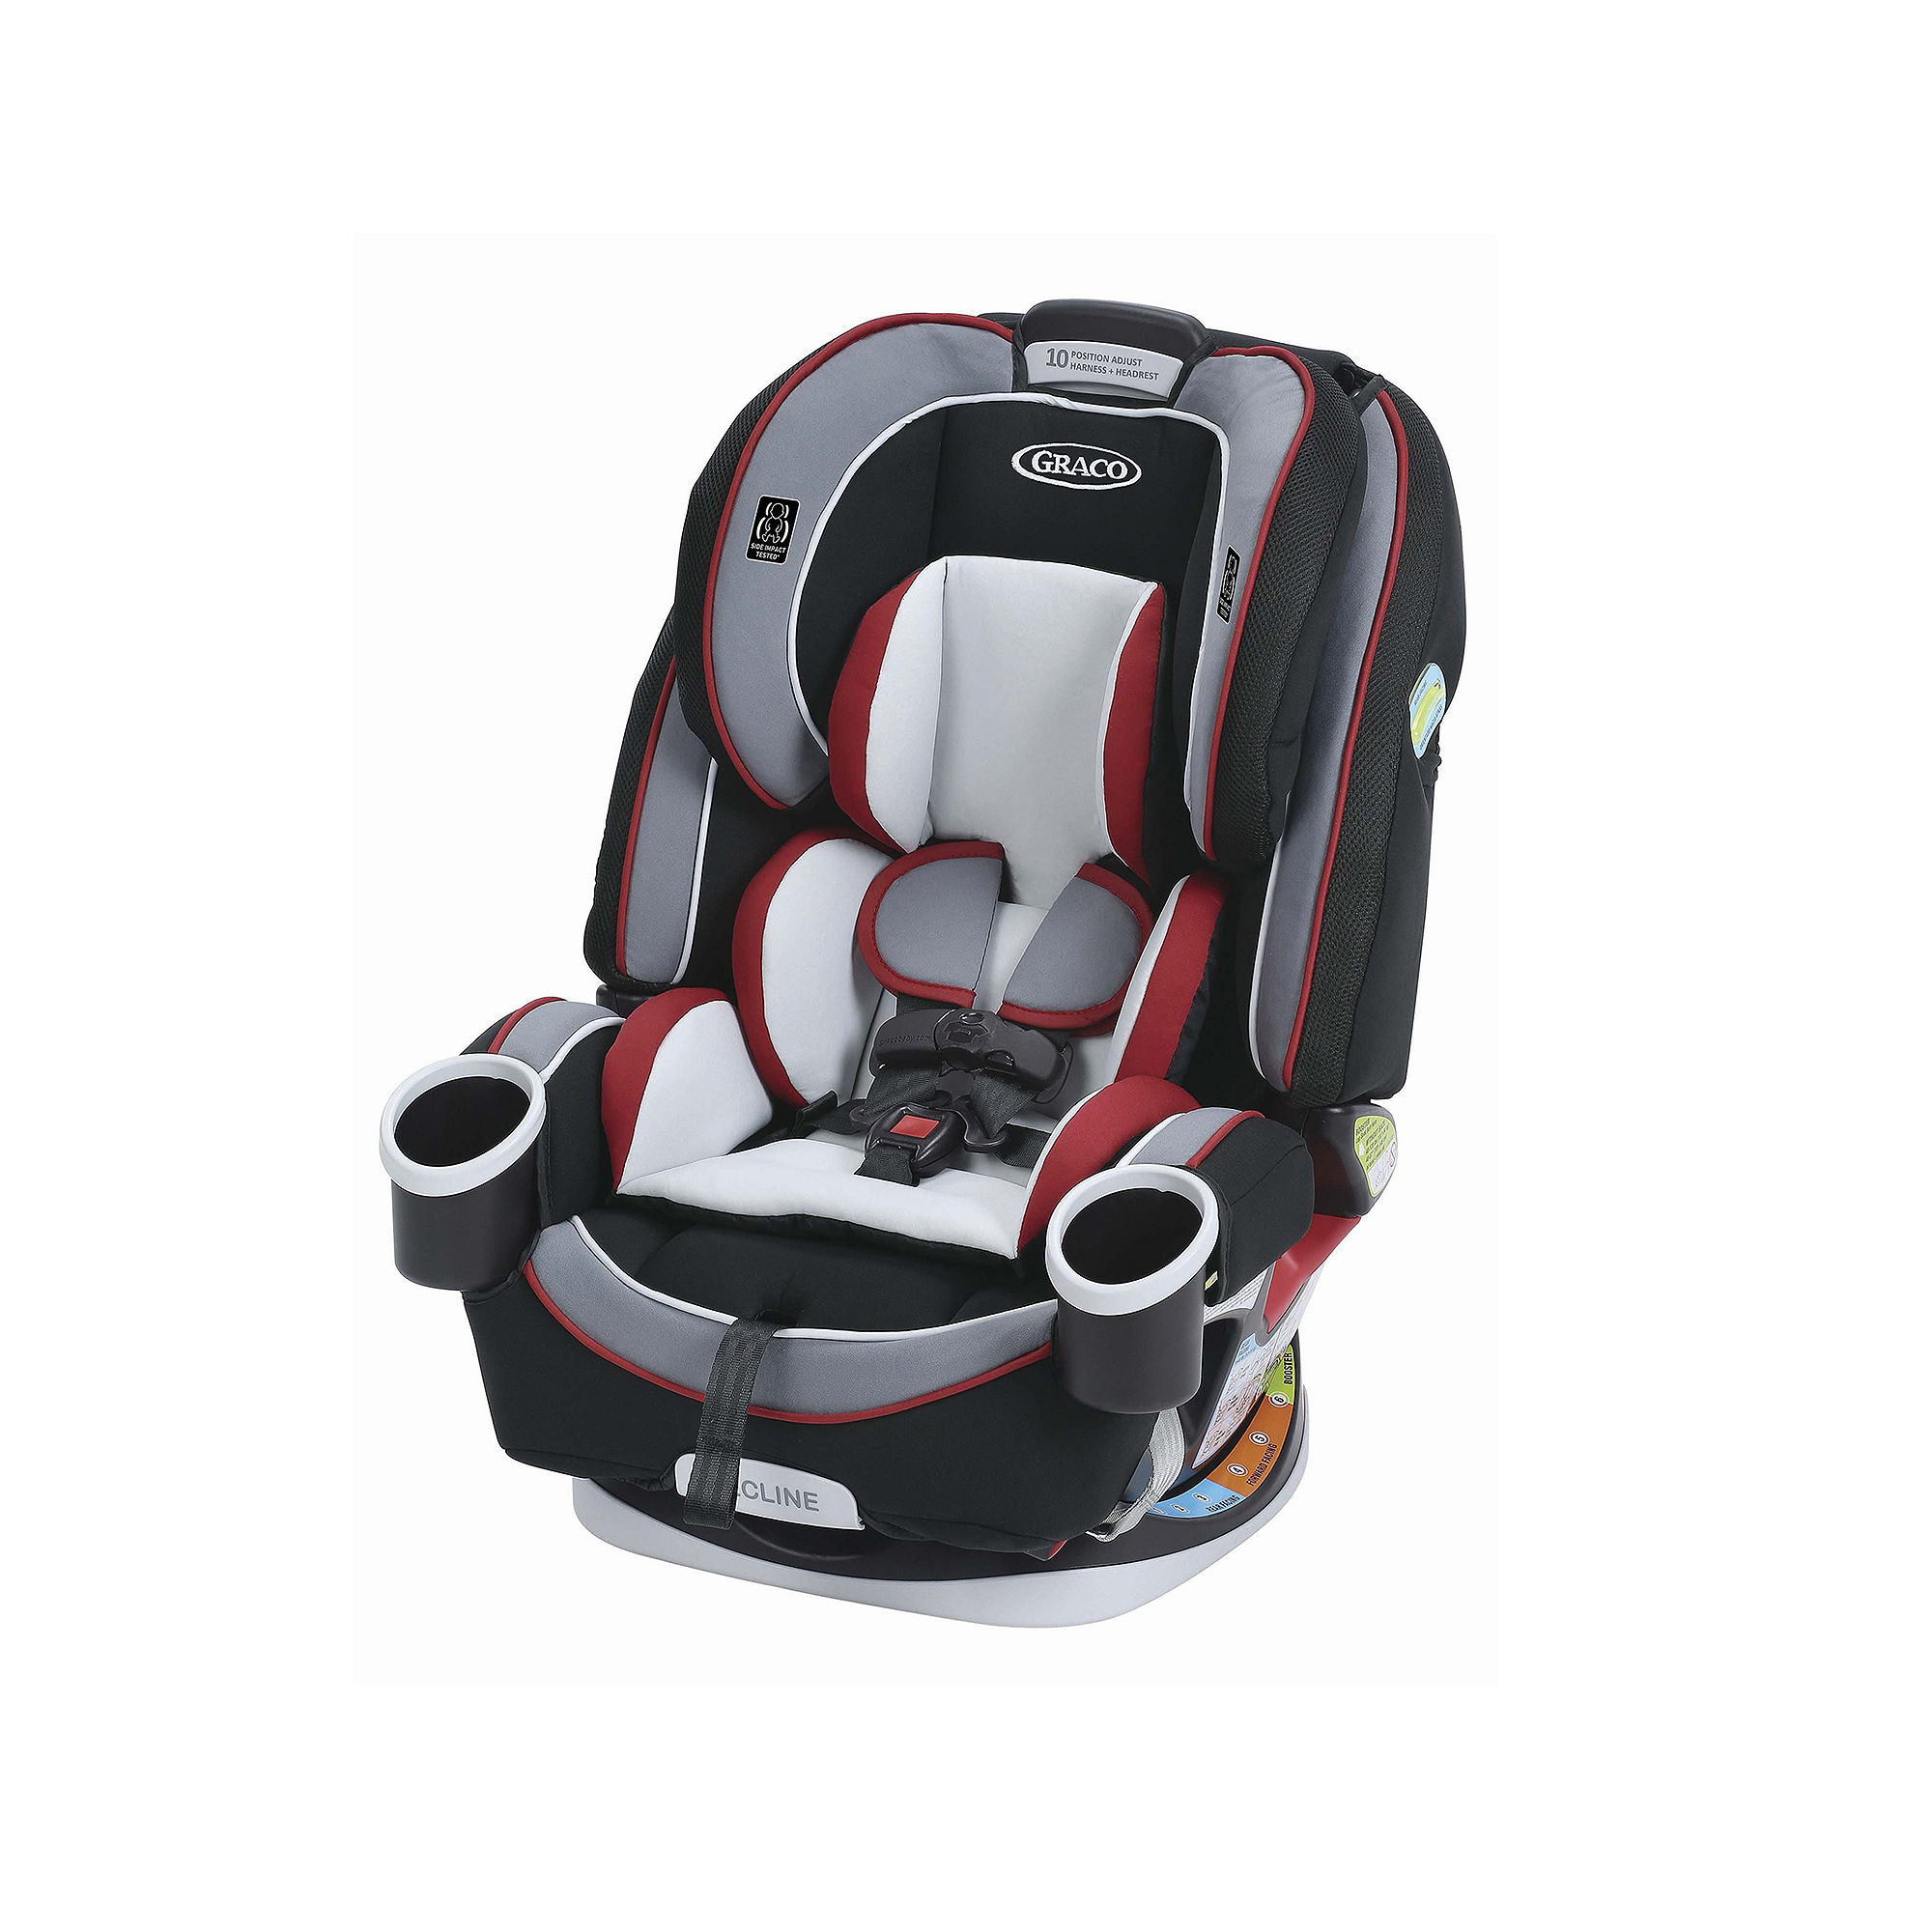 cheap graco nautilus 65 3 in 1 multi use harness booster car seat in track now cheap car seat. Black Bedroom Furniture Sets. Home Design Ideas